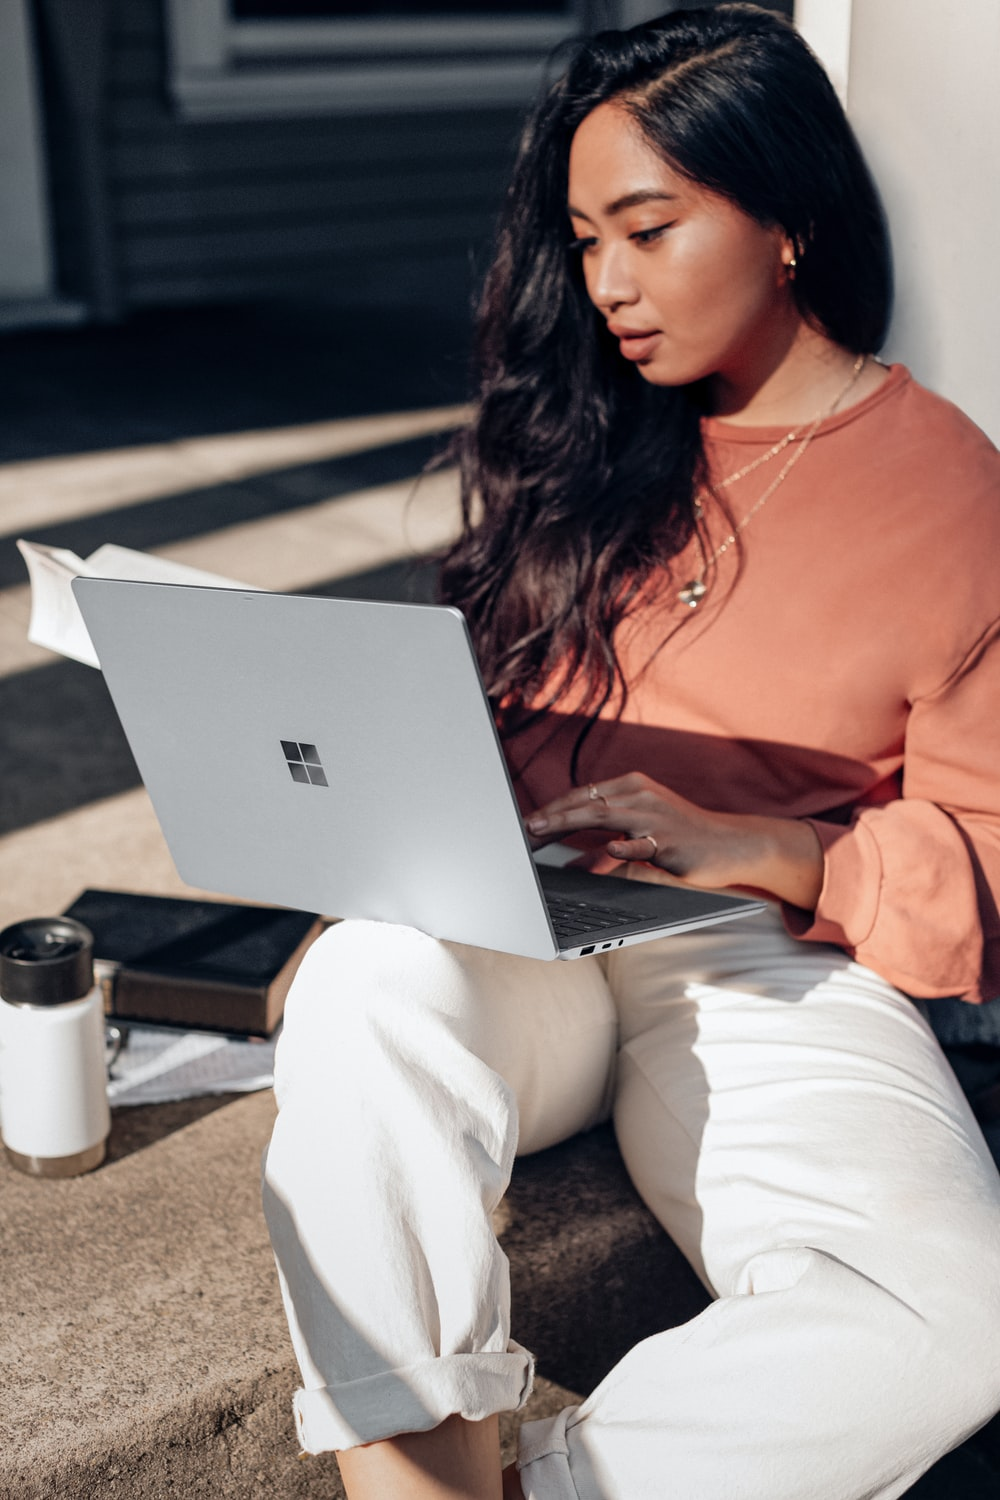 woman in orange long sleeve shirt and white pants sitting on floor using Surface Laptop